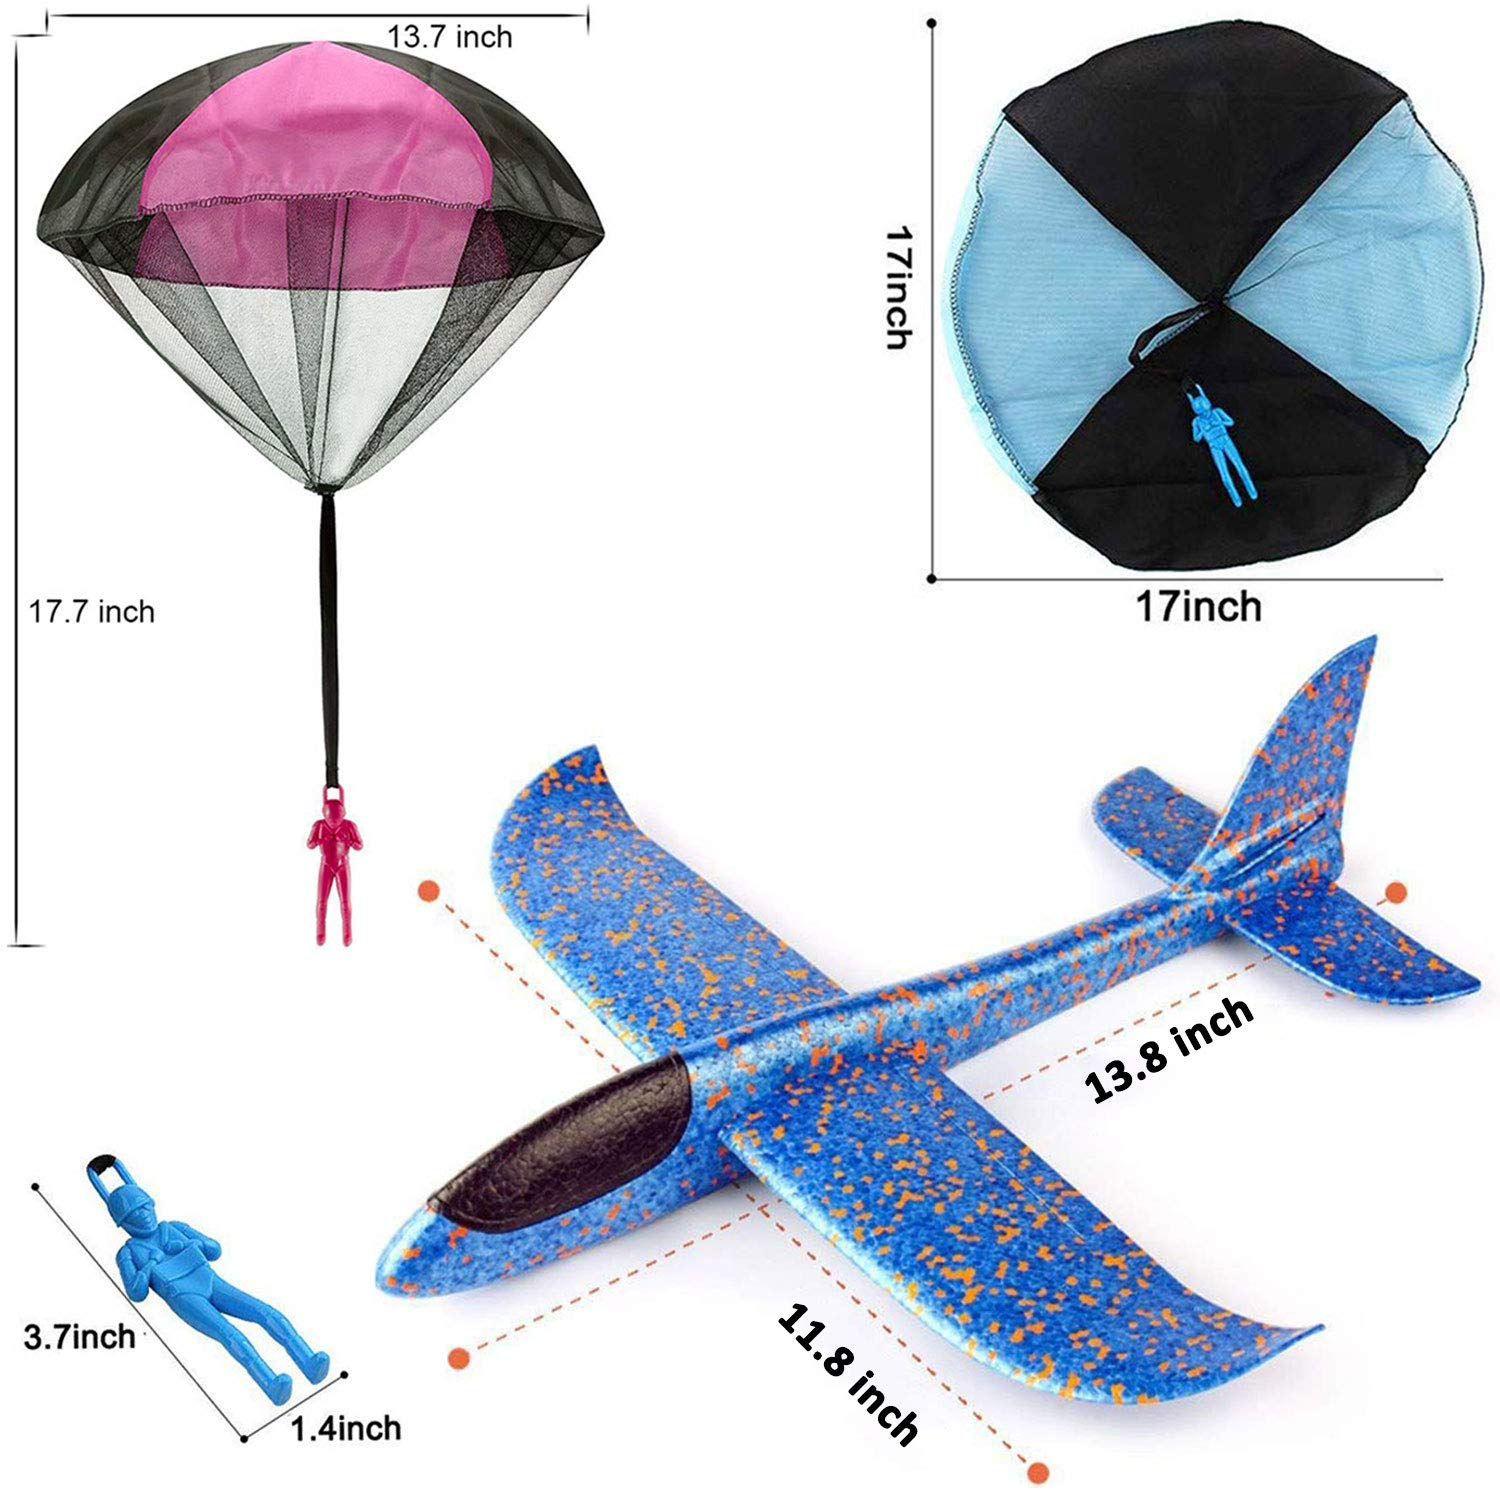 7 Pack Toy Airplane Glider for Kids, 2P 13.5'' Inch Throwing Foam Plane Kit Aircraft Jet+5P Toy Parachute Tangle Free Throwing, Outdoor Sports Flying Toys for Boys Girls Toddlers Teens Birthday Gift by iGeeKid (Image #4)